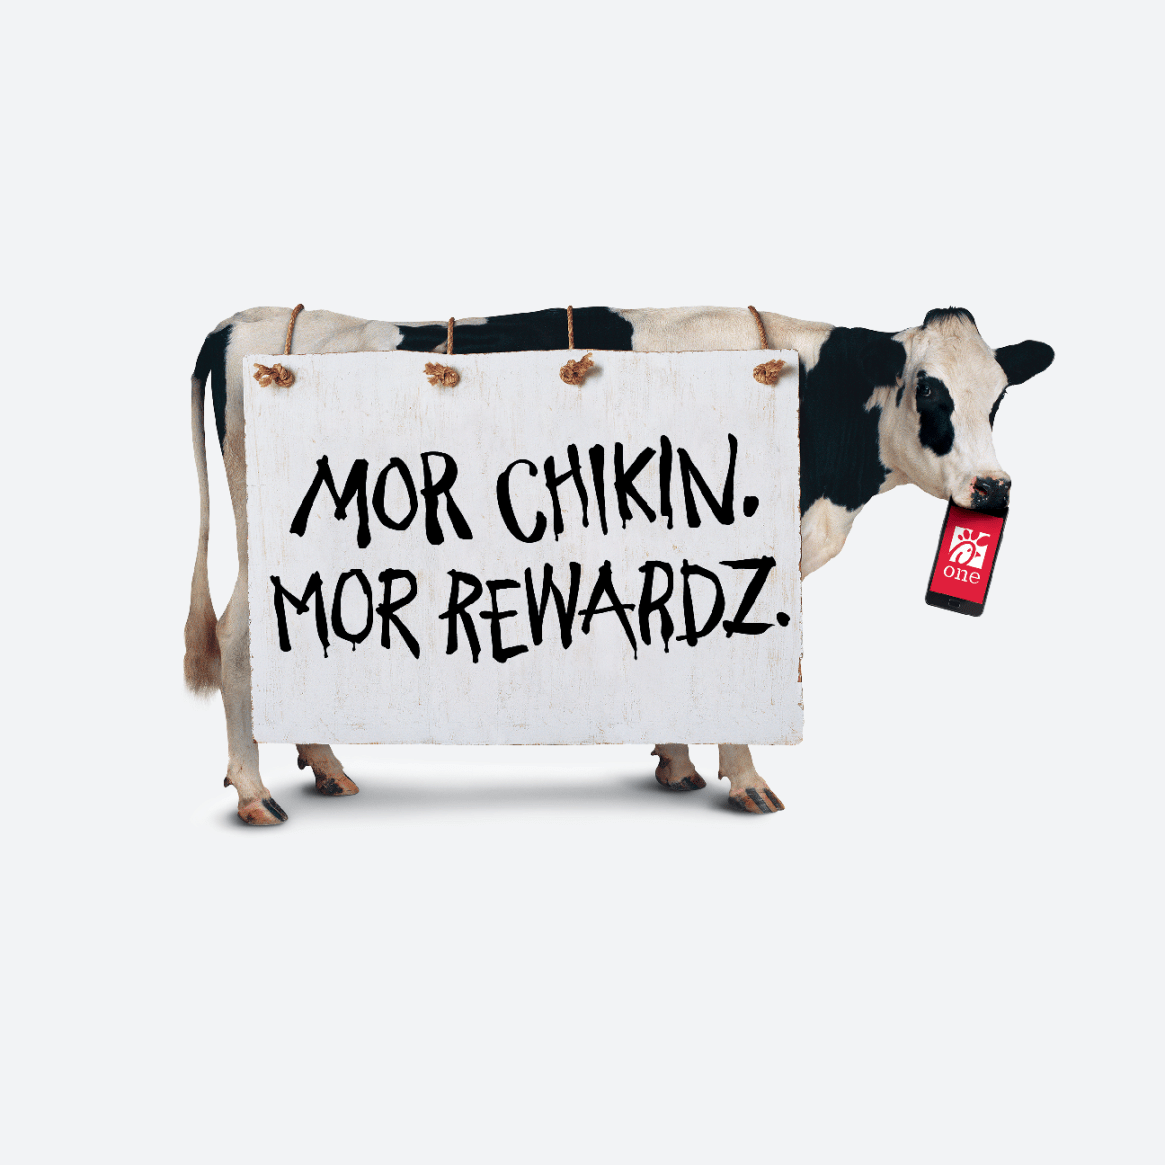 Morchikin-Morrewardz